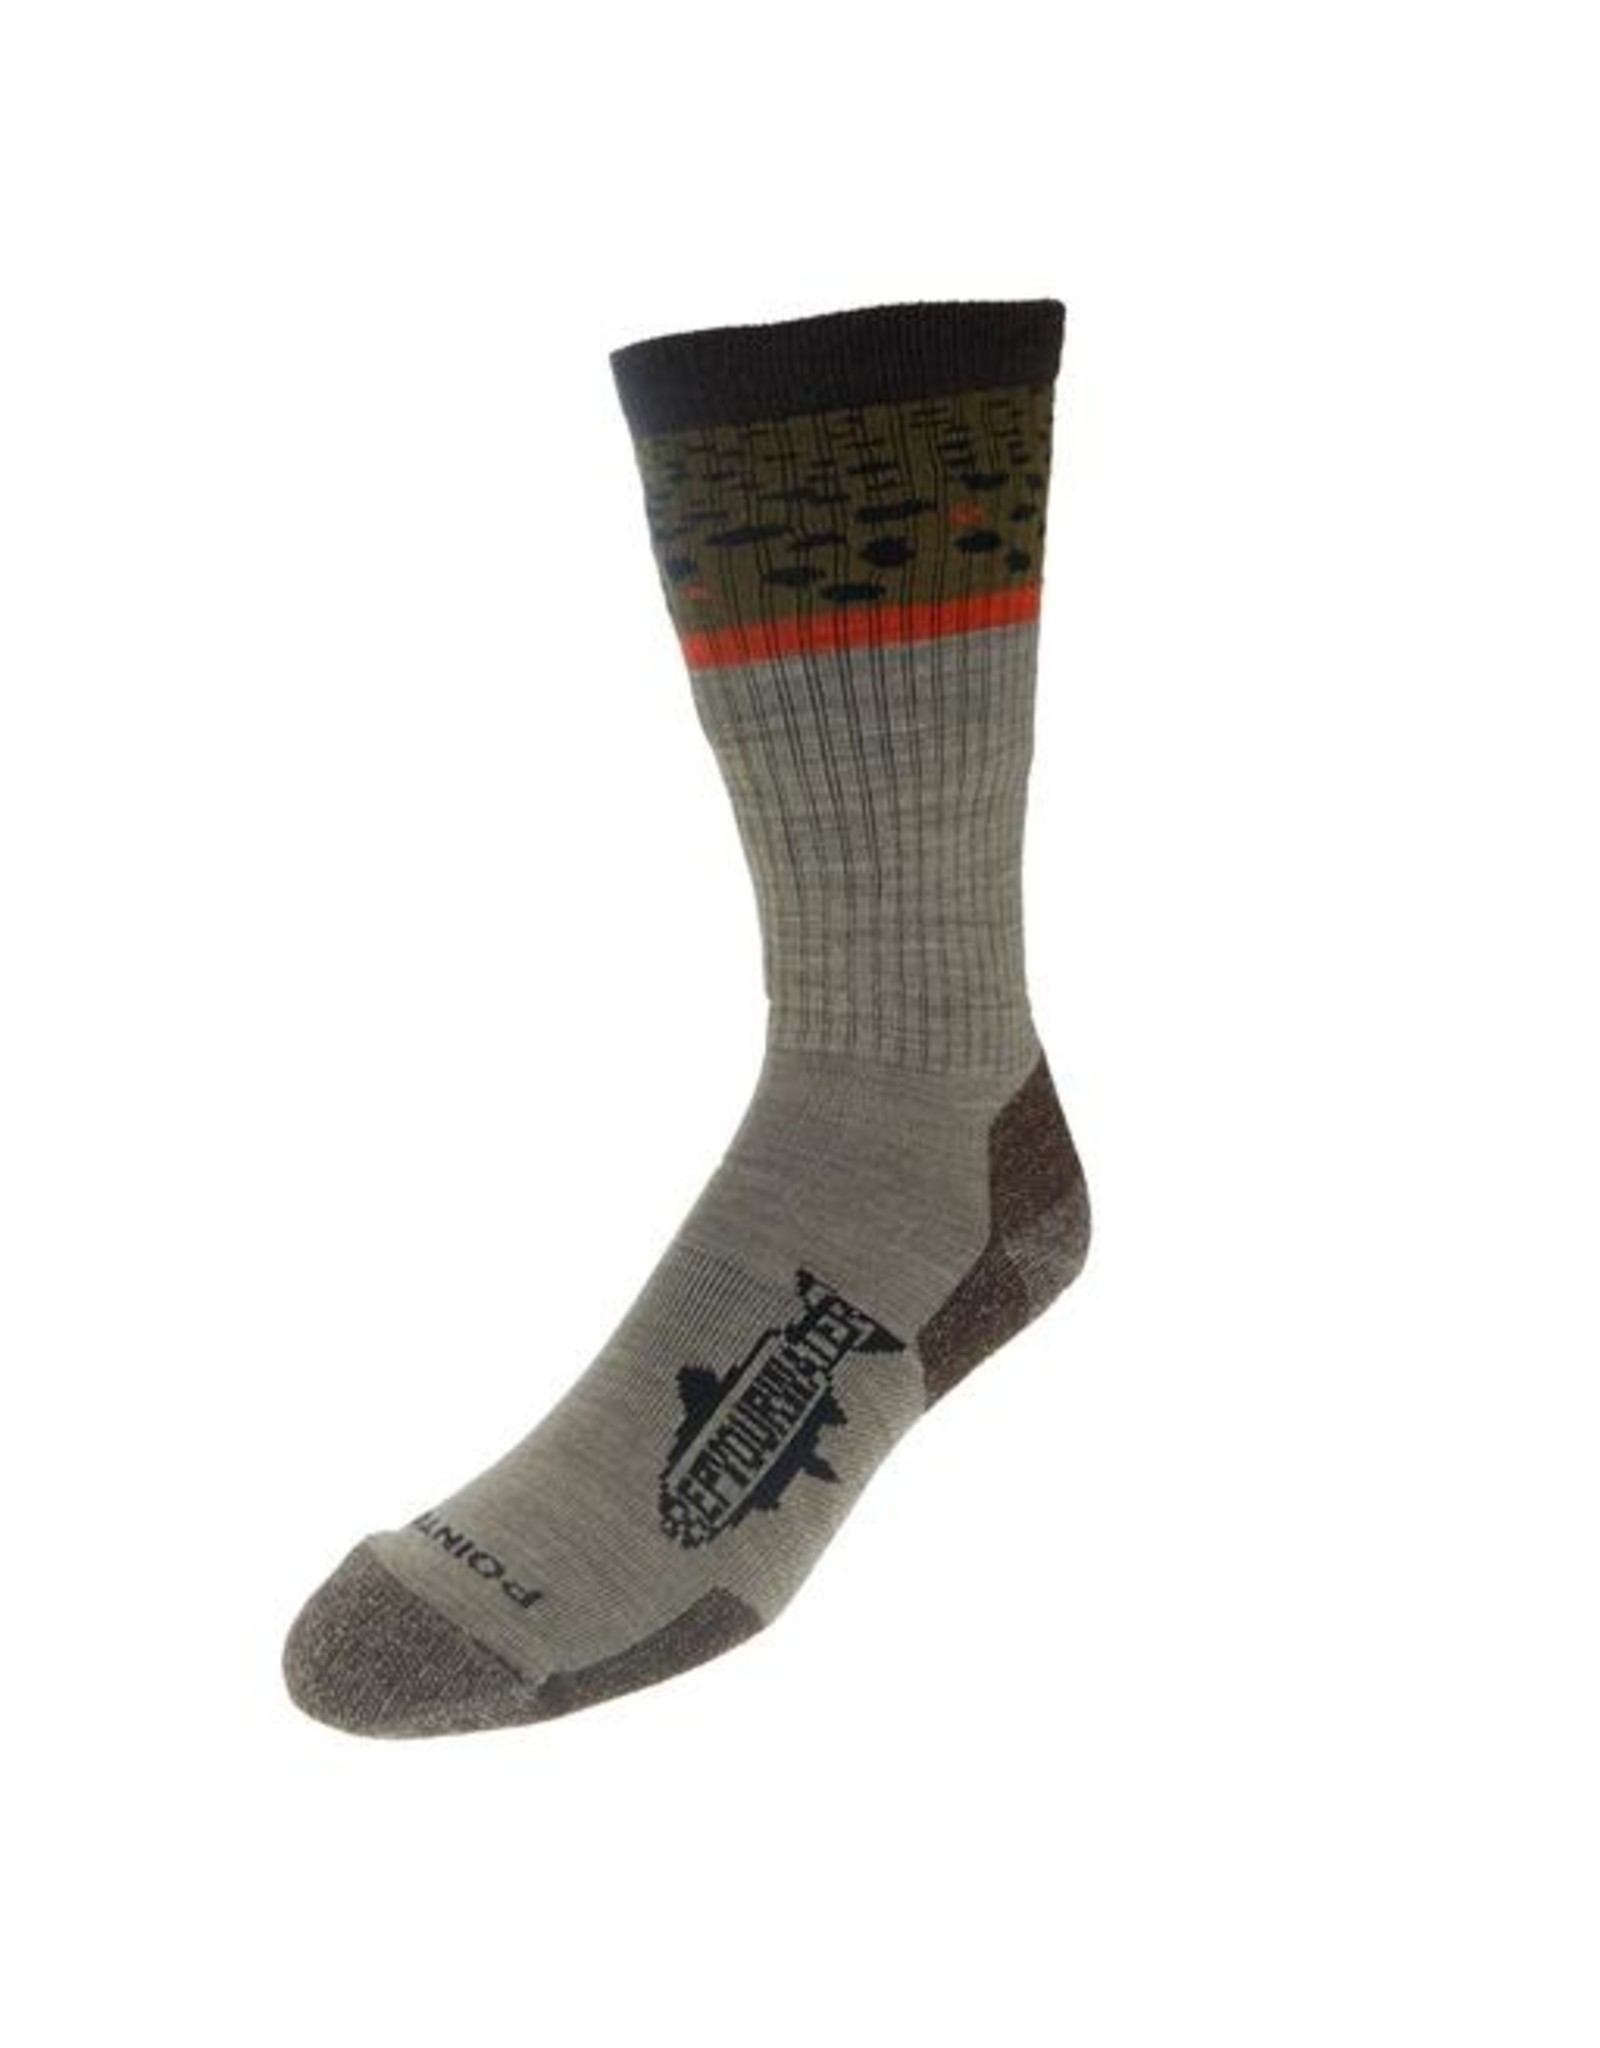 Rep Your Water Rep Your Water - Trout Socks